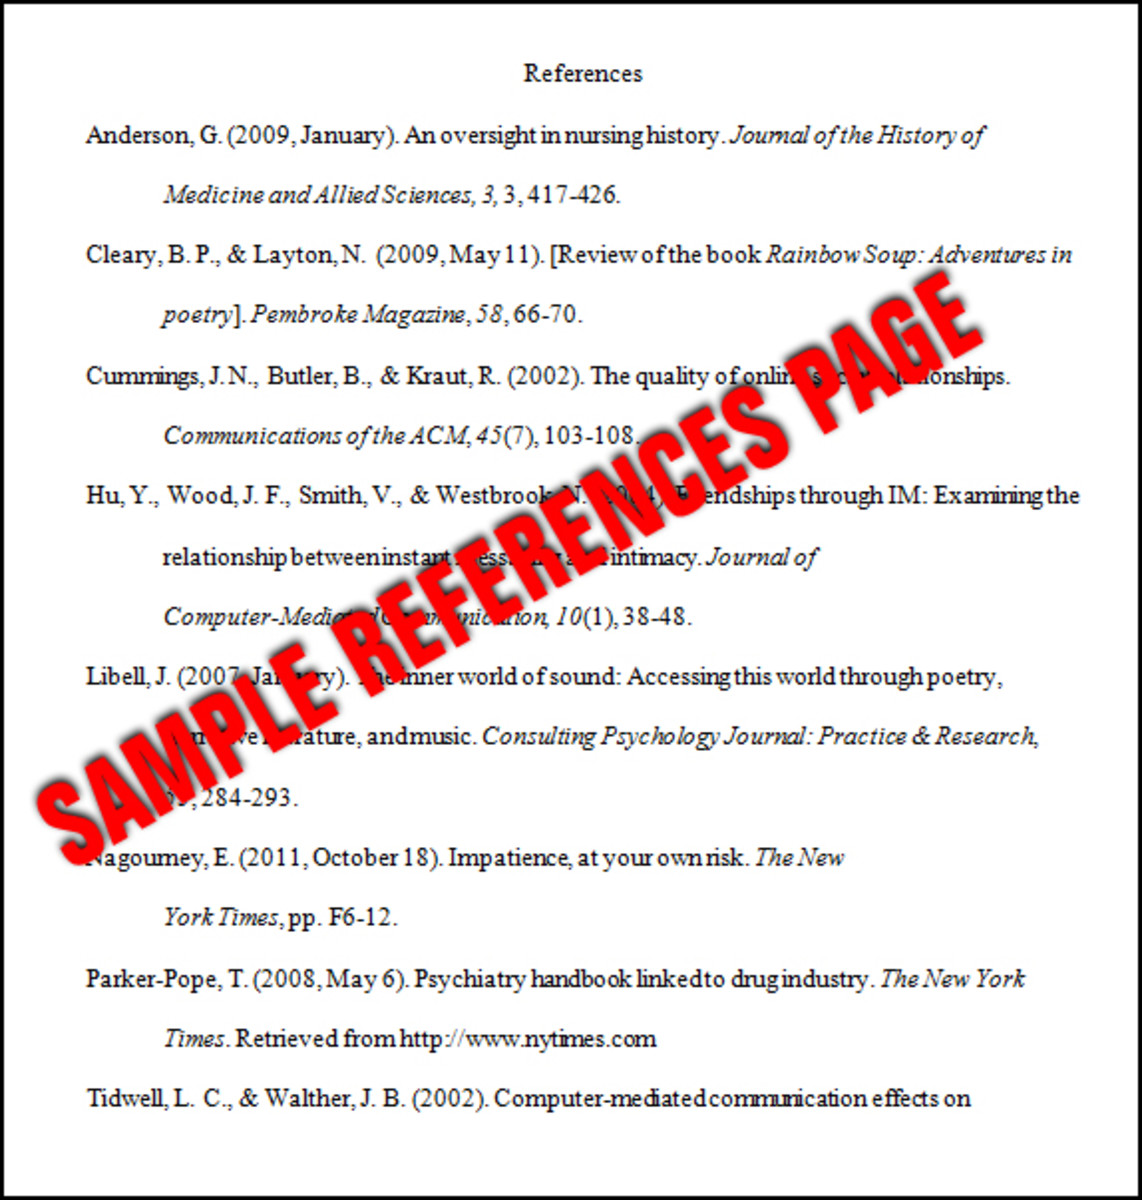 Essay Basics Format a References Page in APA Style Owlcation - Apa References Page Sample